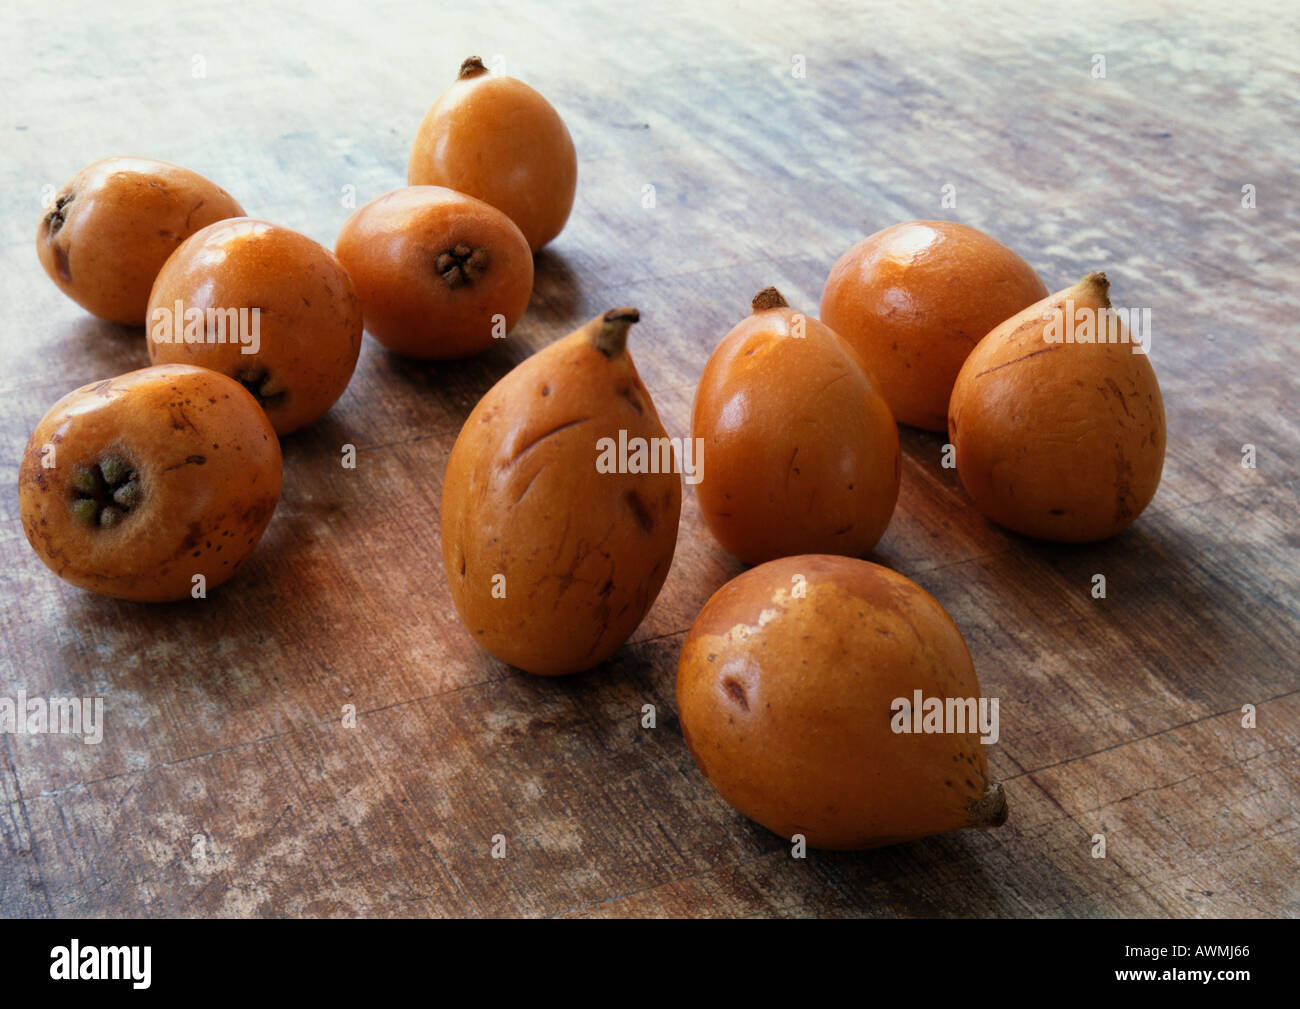 Exotic fruits on your table: how to eat loquat